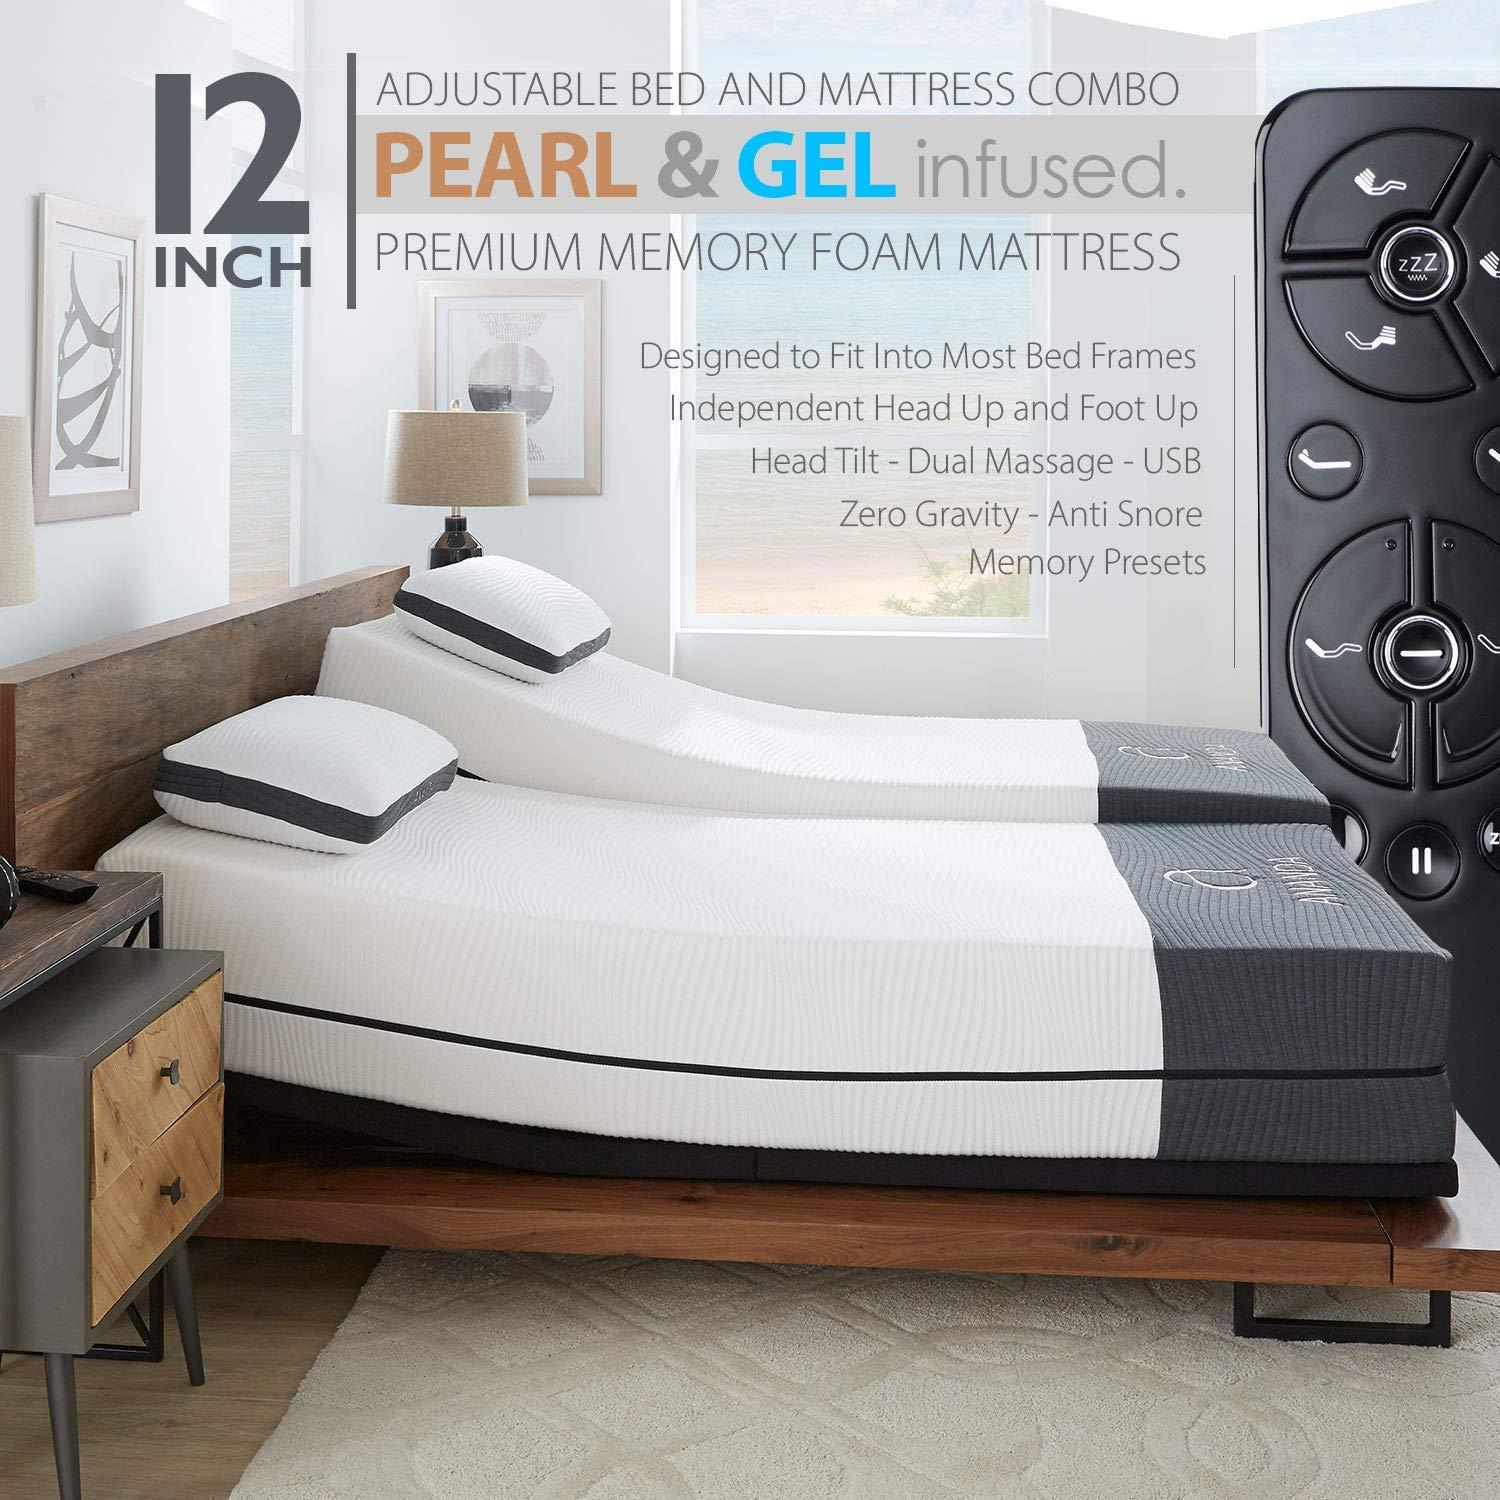 Blissful Nights Ananda 12 inch Pearl and Cool Gel Infused Memory Foam Mattress with Premium Adjustable Bed Frame Combo